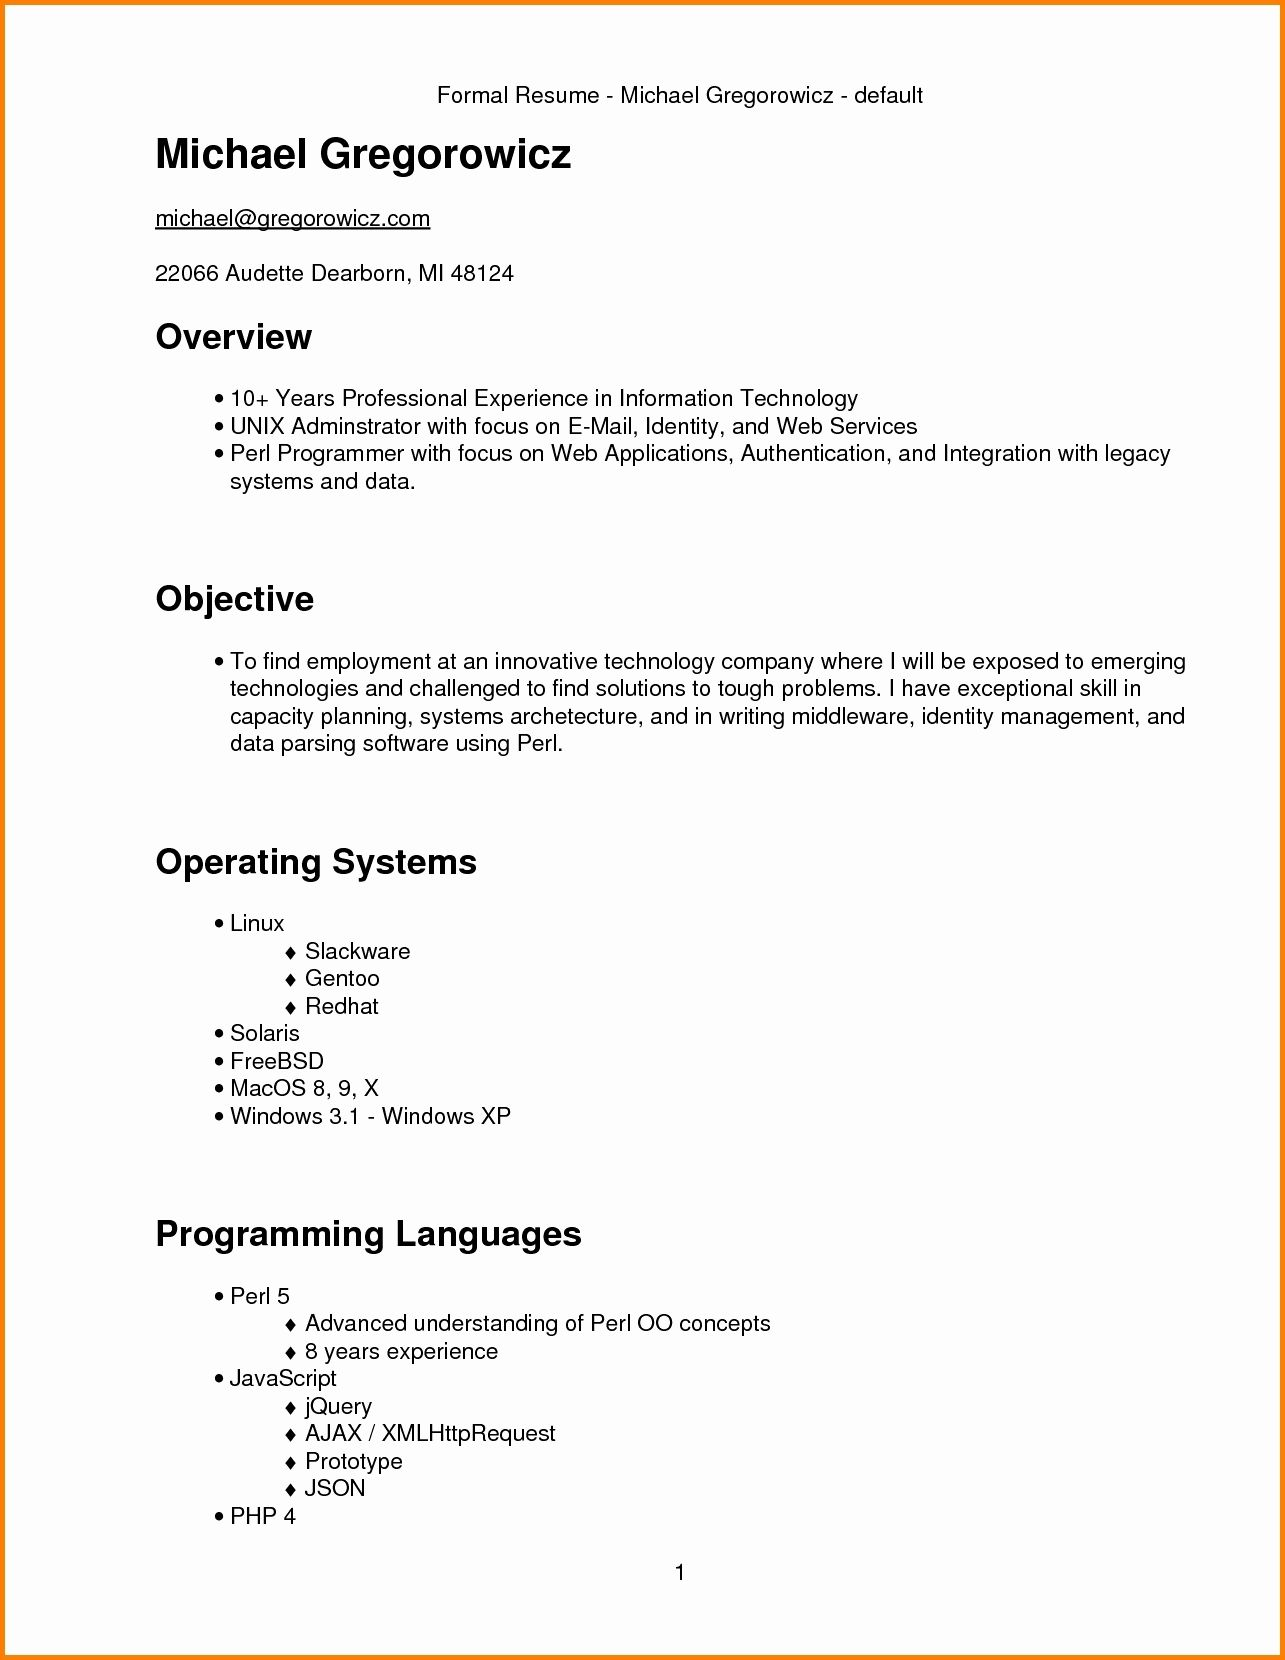 Resume Format 3 Years Experience Marketing | Resume Format ...